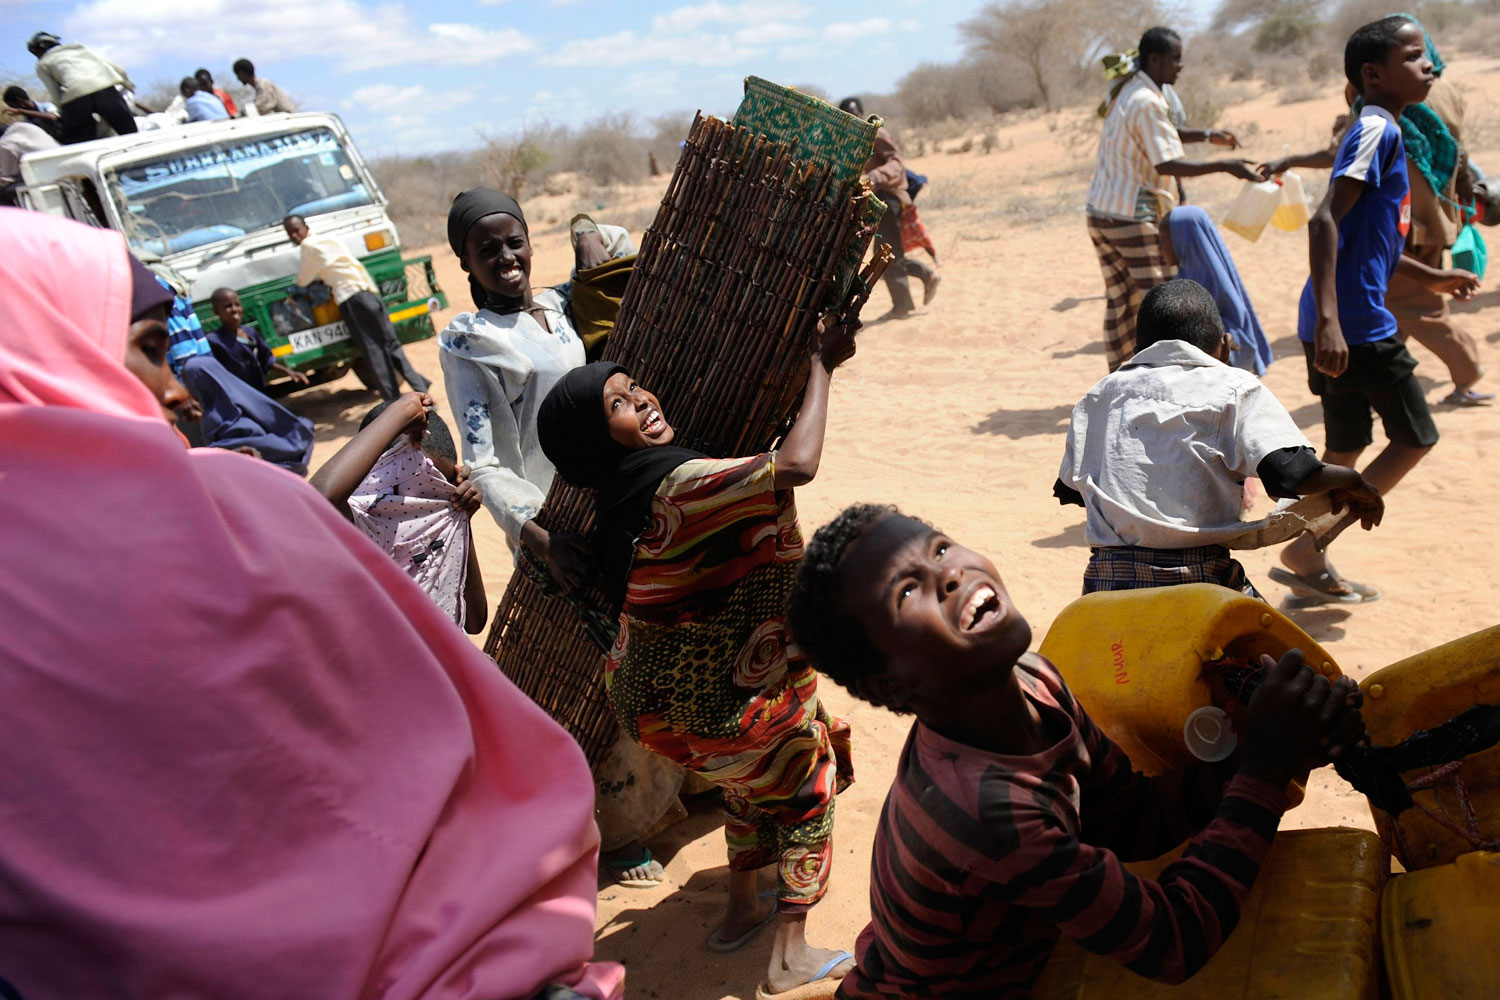 August 29, 2011. Refugees in Hagadera, Kenya, scramble to load their belongings onto trucks that will relocate them to a newly opened camp near Nairobi. About a thousand new refugees fleeing famine in Somalia continue to pour into Kenya each day.